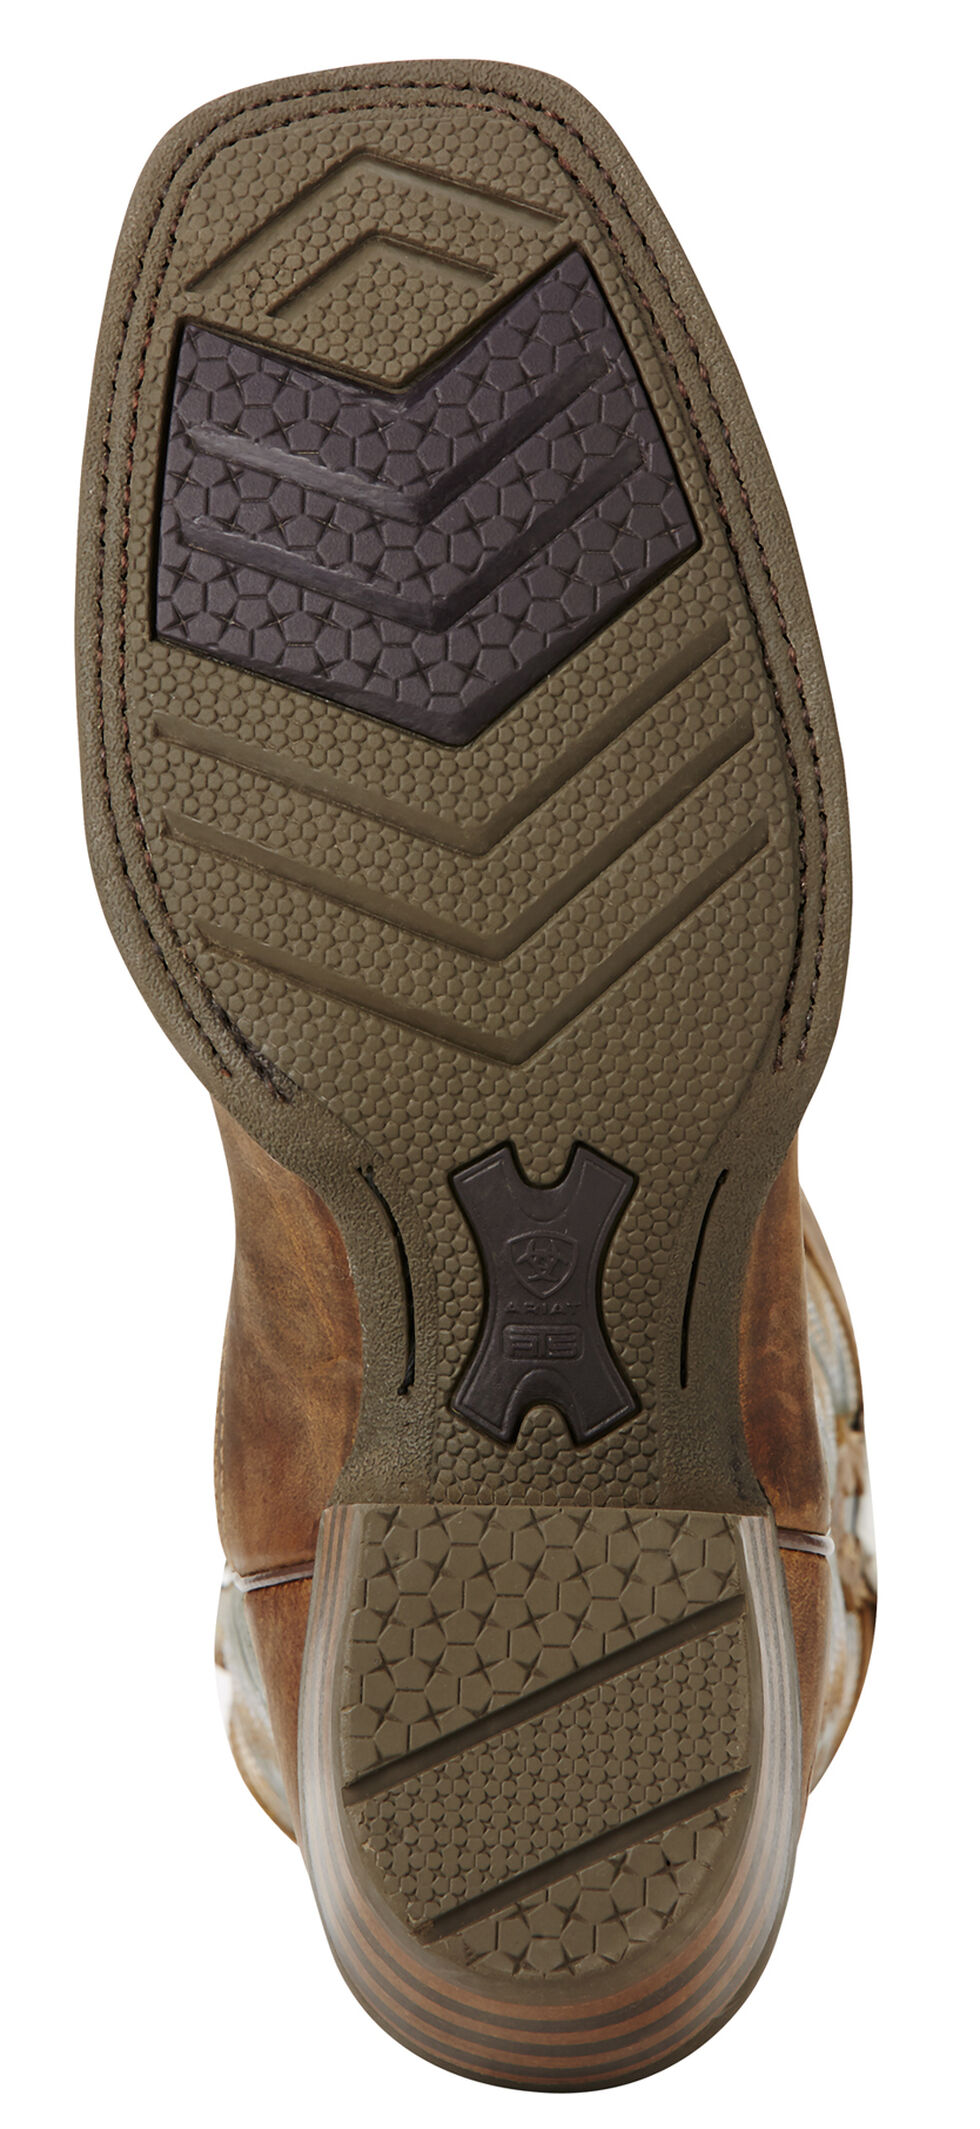 Ariat Neon Lime Futurity Performance Cowboy Boots - Square Toe , Tan, hi-res